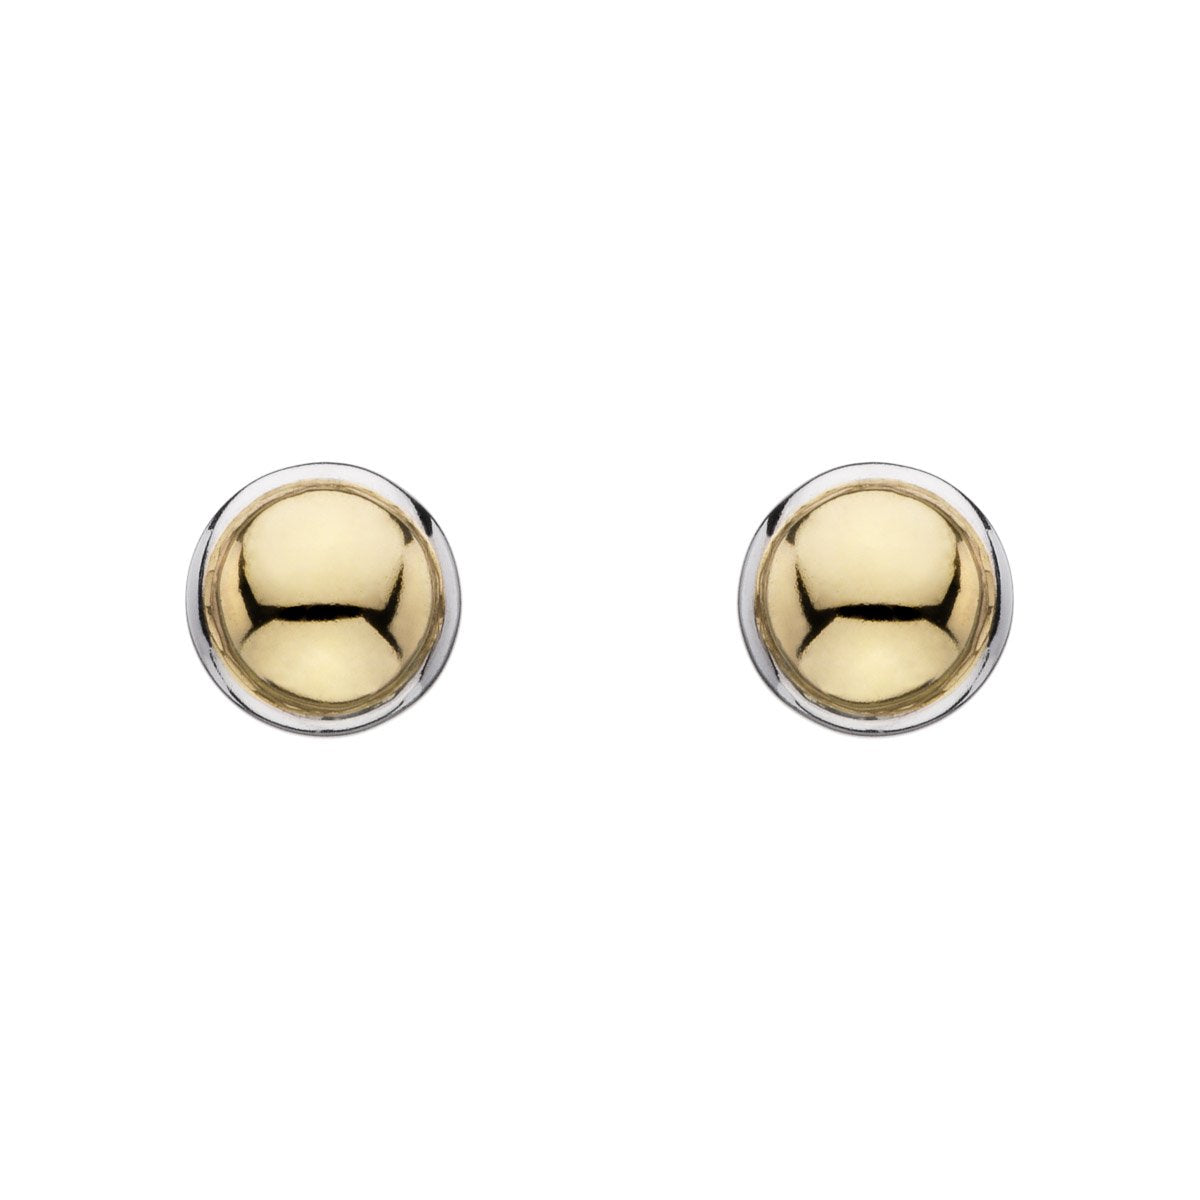 Najo E5906 Golden Glimmer Stud Earrings